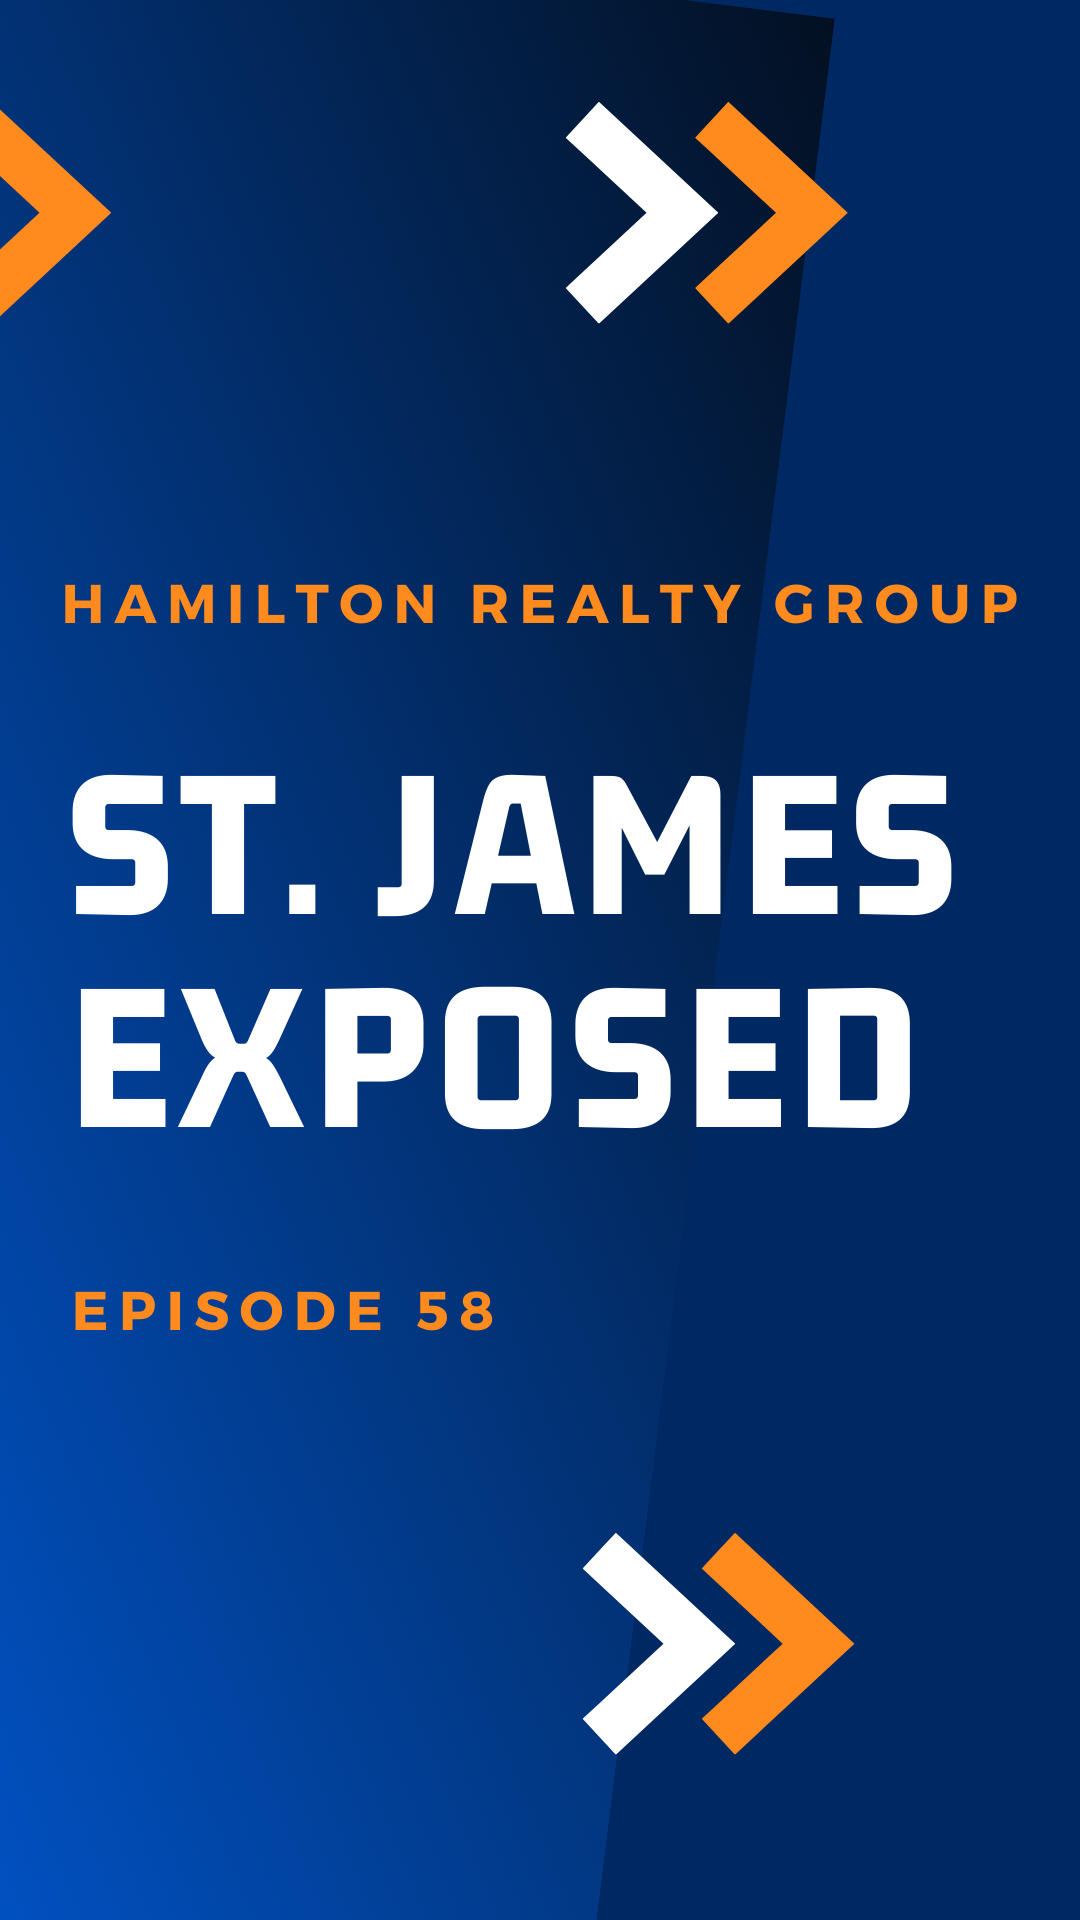 St. James Exposed — EPISODE 58